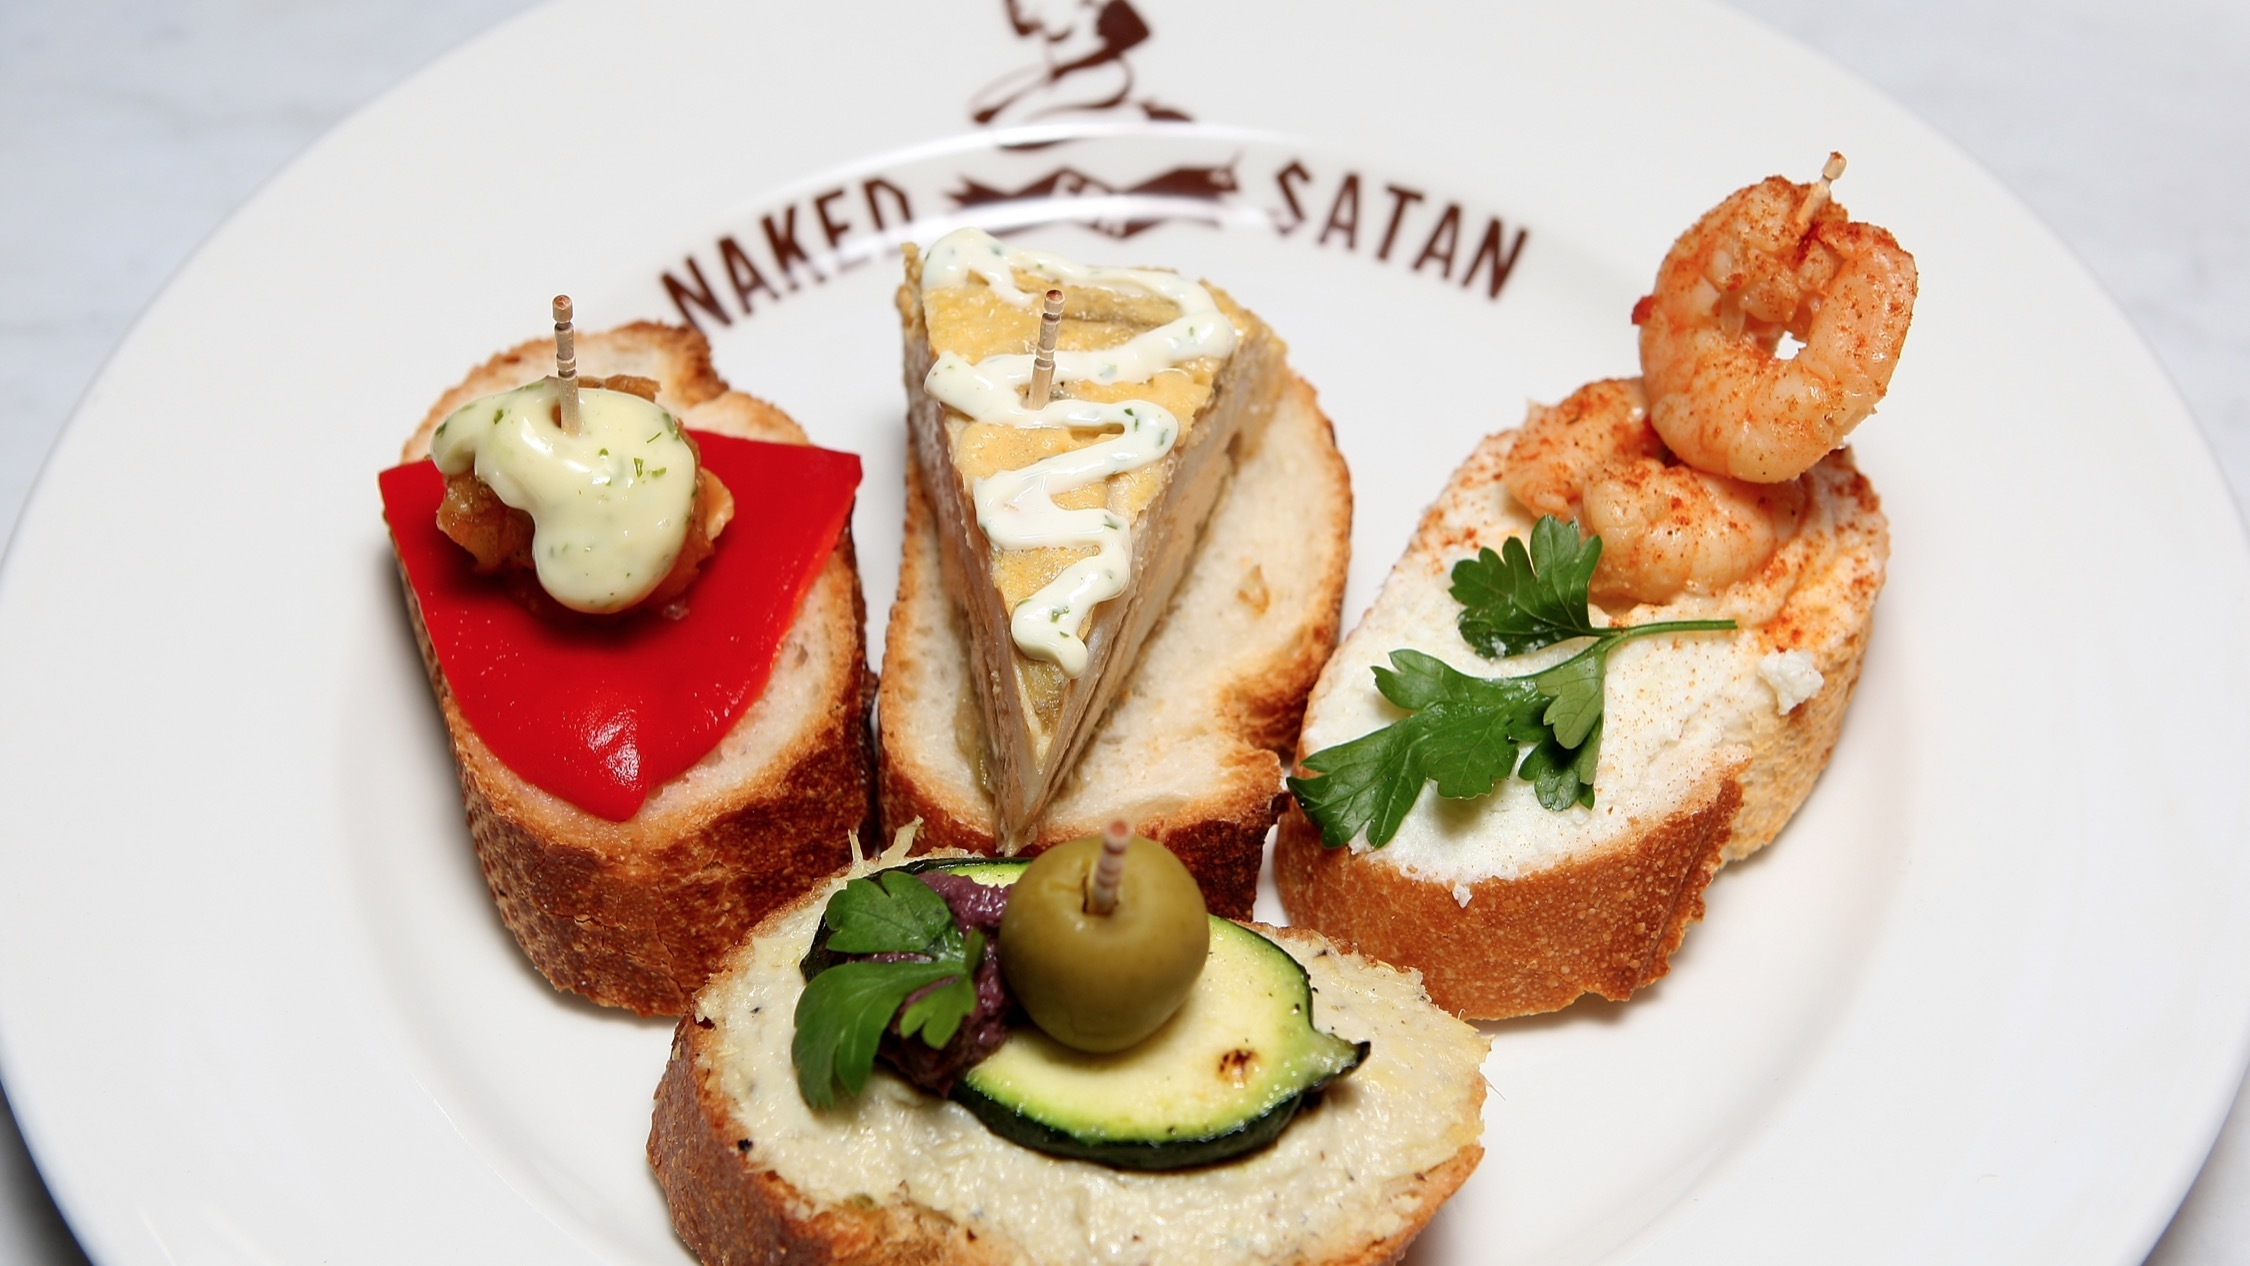 Naked For Satan is no longer doing 50 cent pintxos